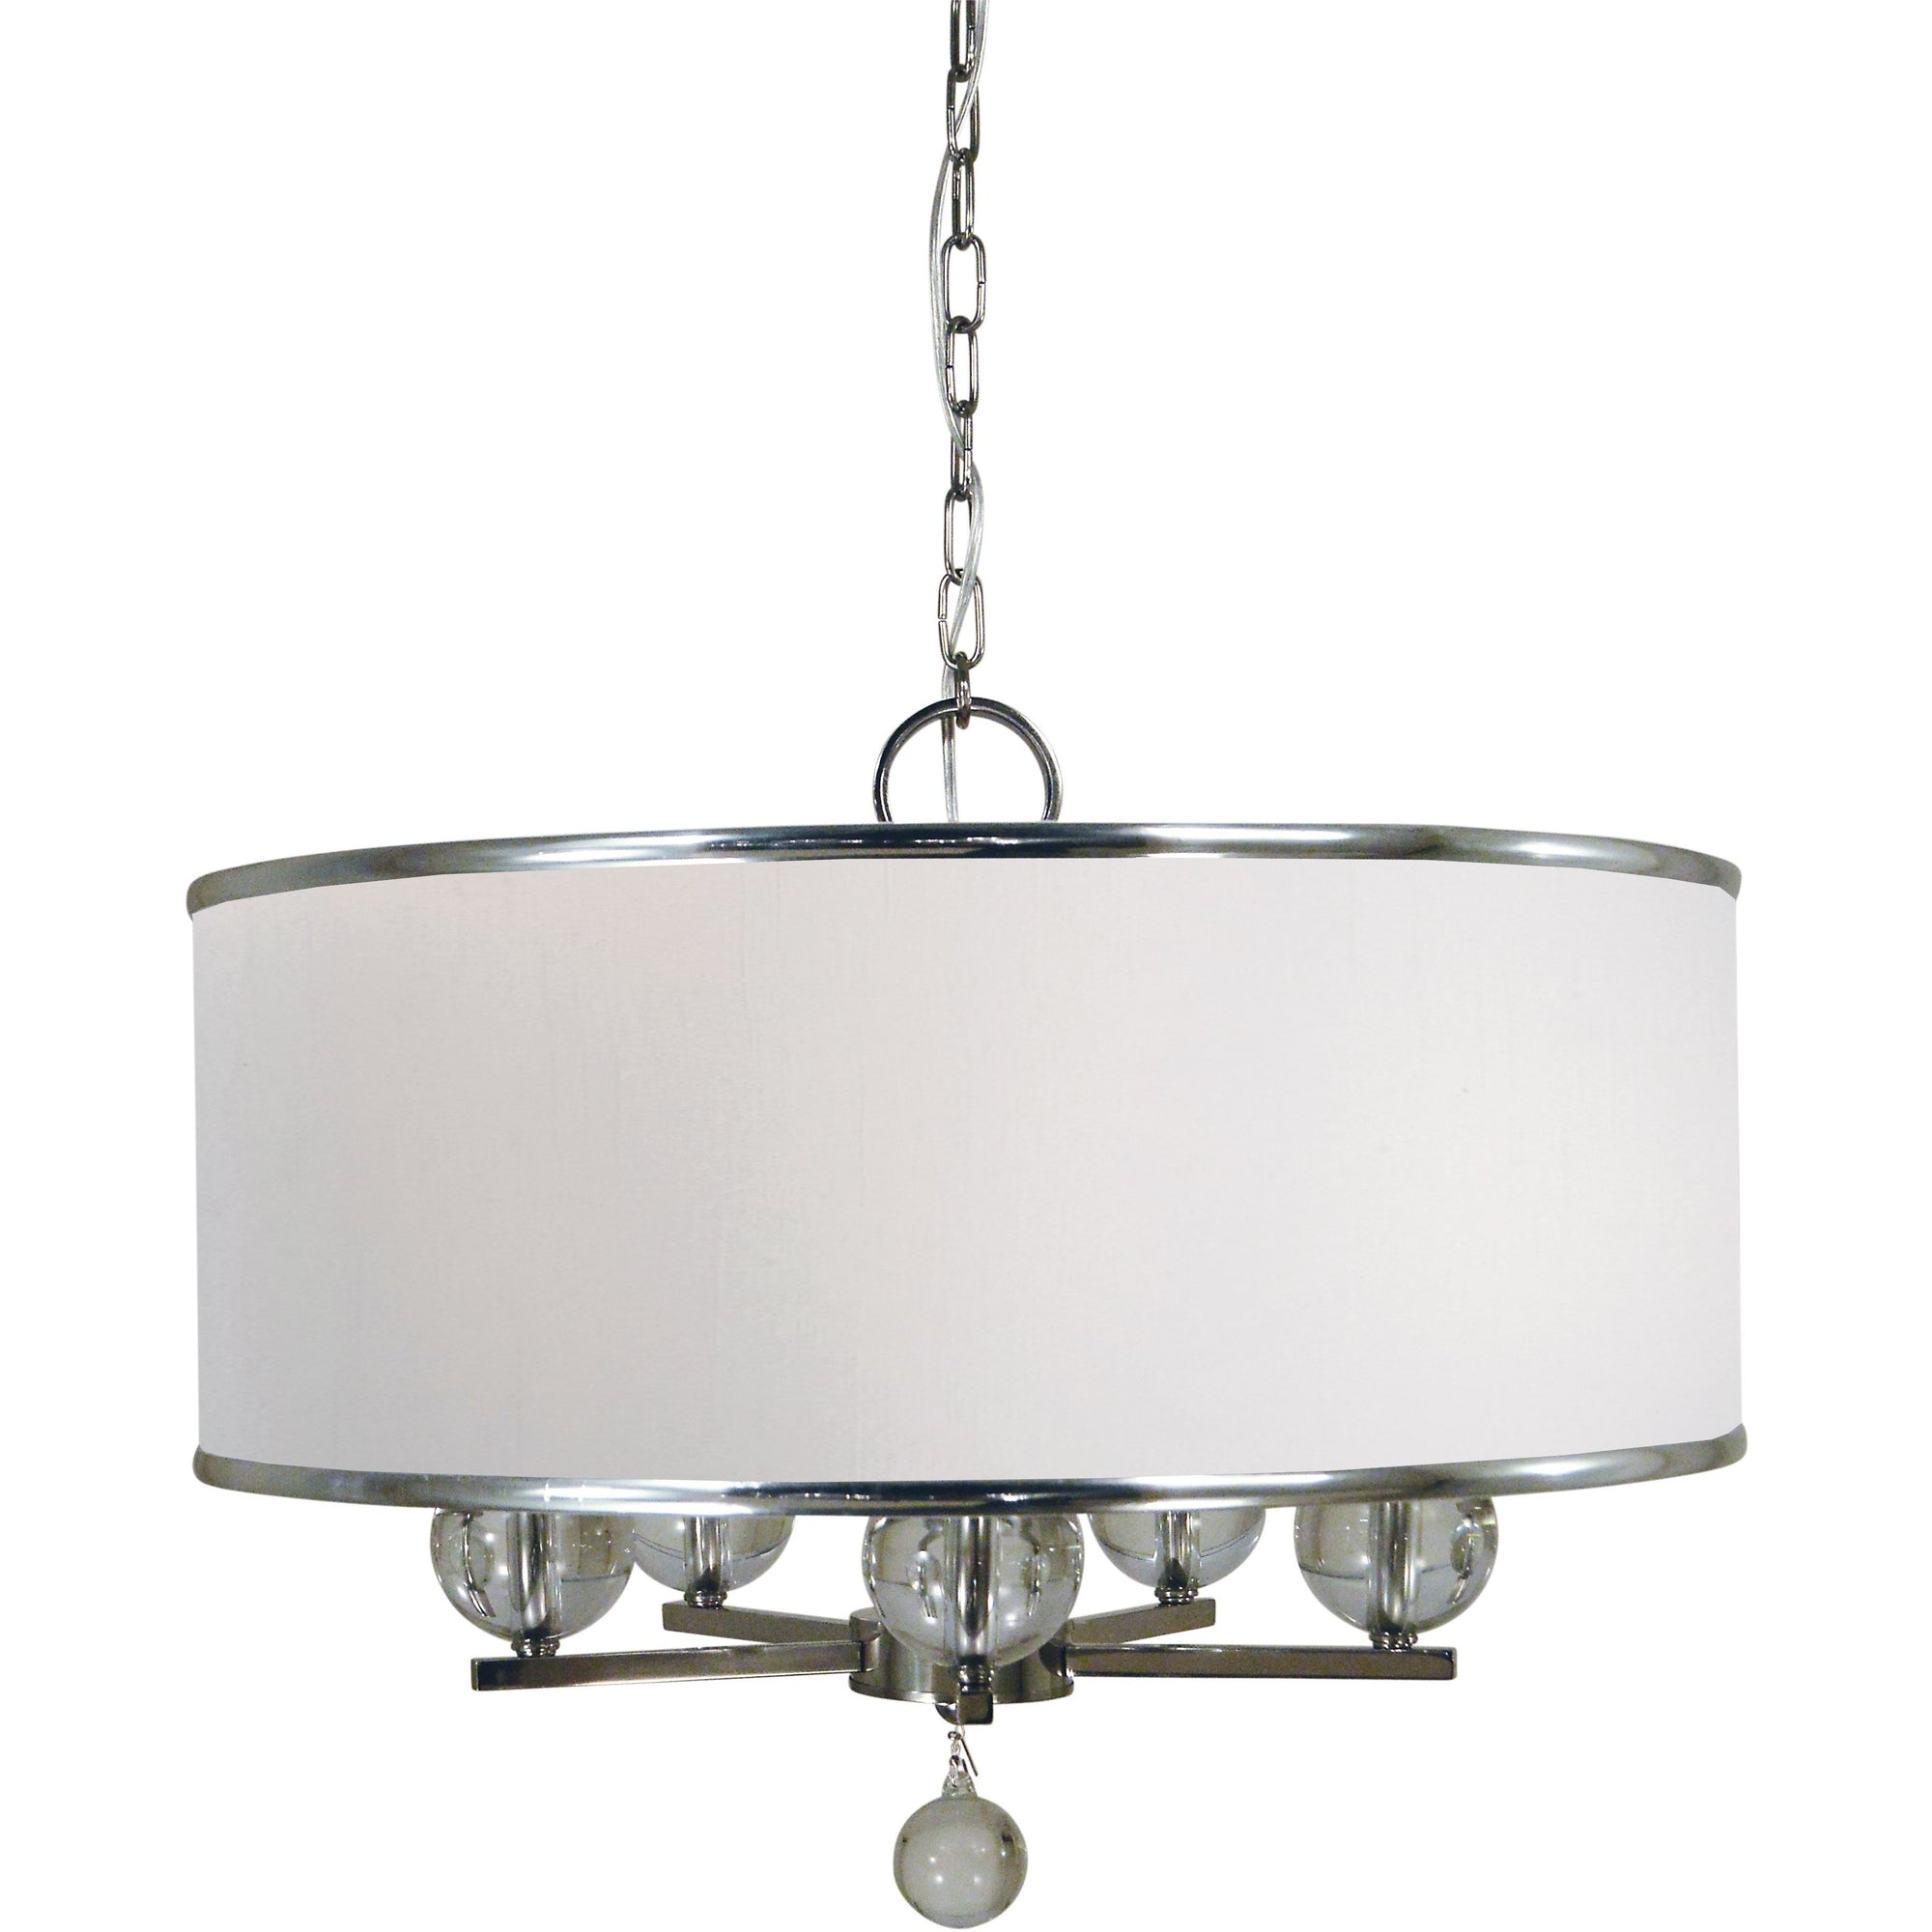 Framburg Chandeliers Polished Nickel 5-Light Polished Nickel Glamour Chandelier by Framburg 4998